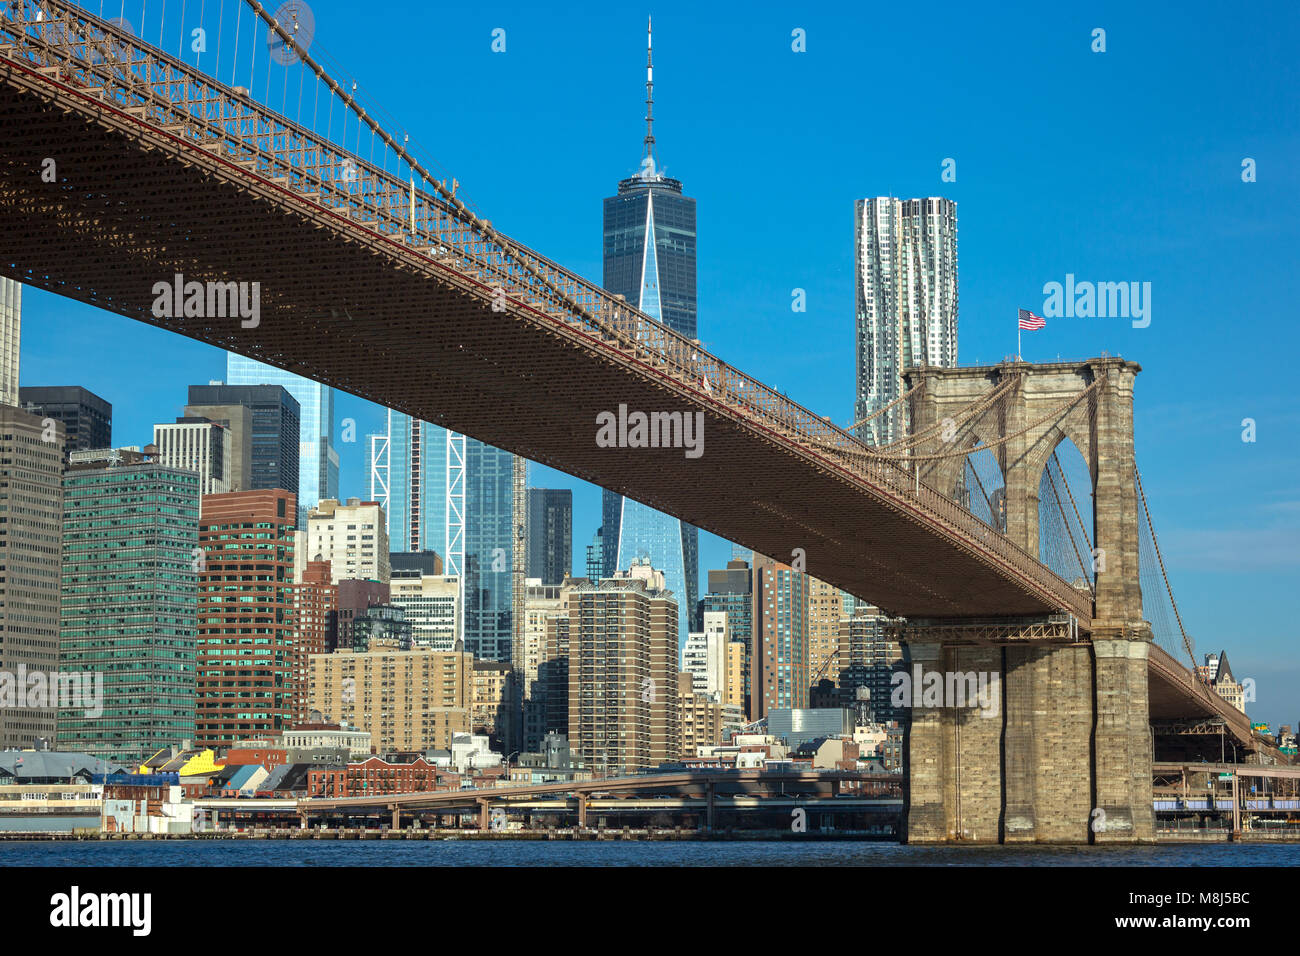 BROOKLYN BRIDGE (©J & W ROEBLING 1876) DOWNTOWN SKYLINE EAST RIVER BROOKLYN NEW YORK CITY USA - Stock Image